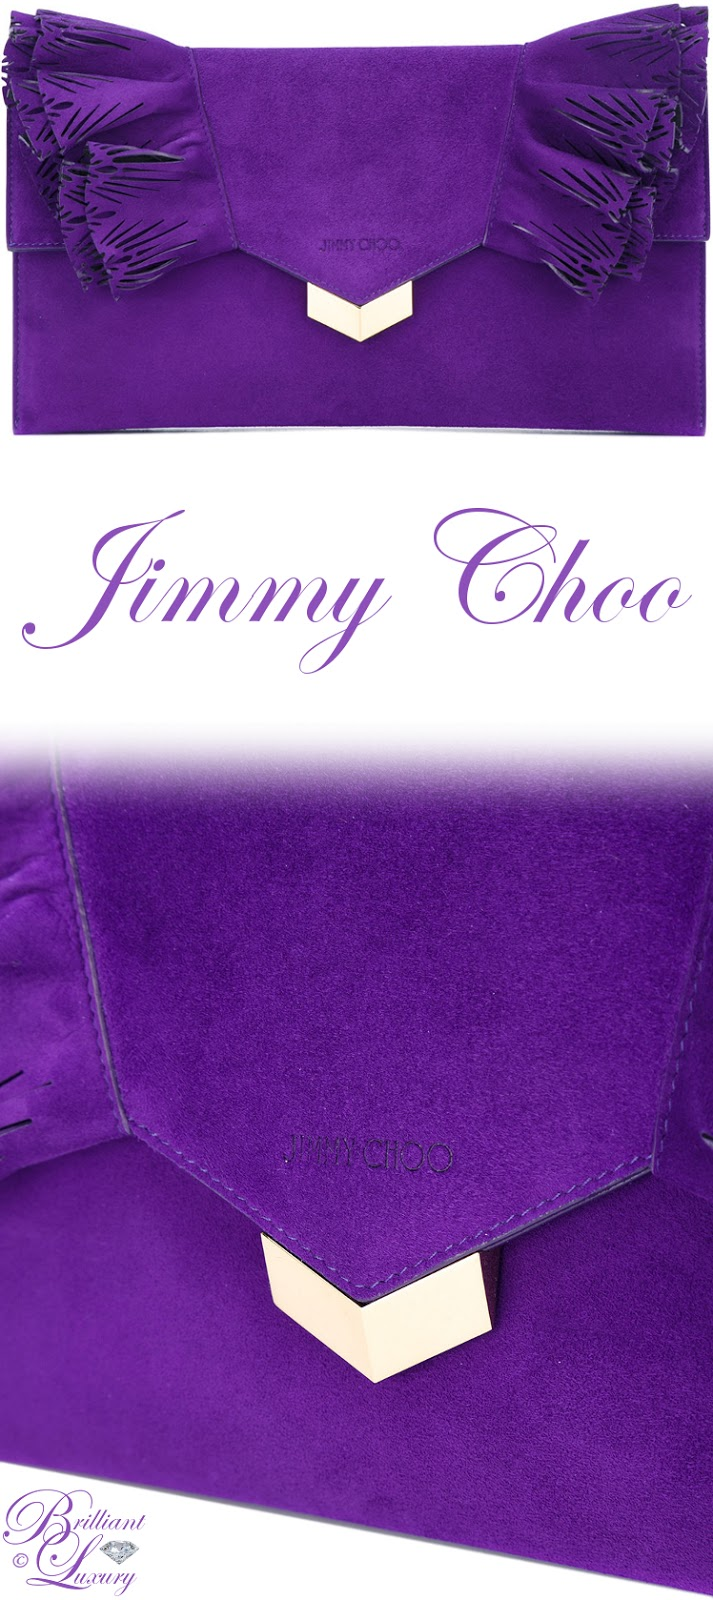 Brilliant Luxury ♦ Jimmy Choo Isabella Clutch